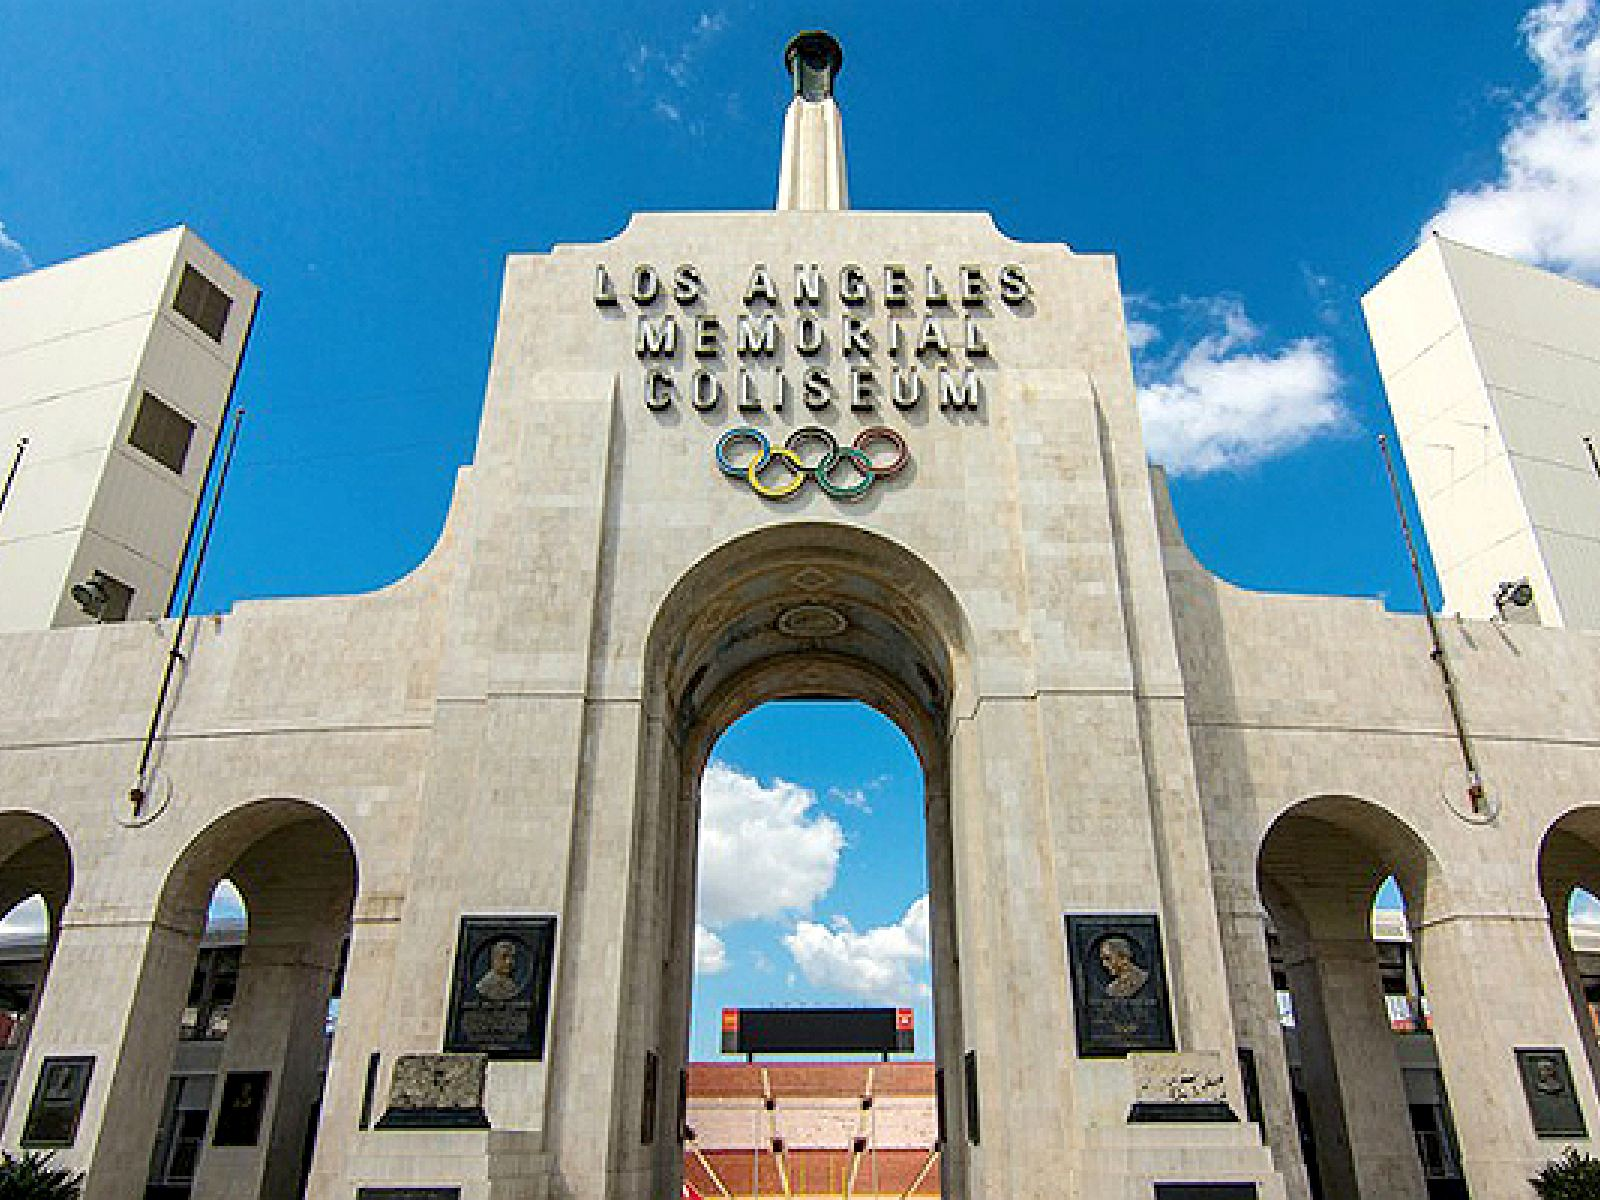 Main image for guide titled Los Angeles Memorial Coliseum : L'histoire d'un emblème de L.A.